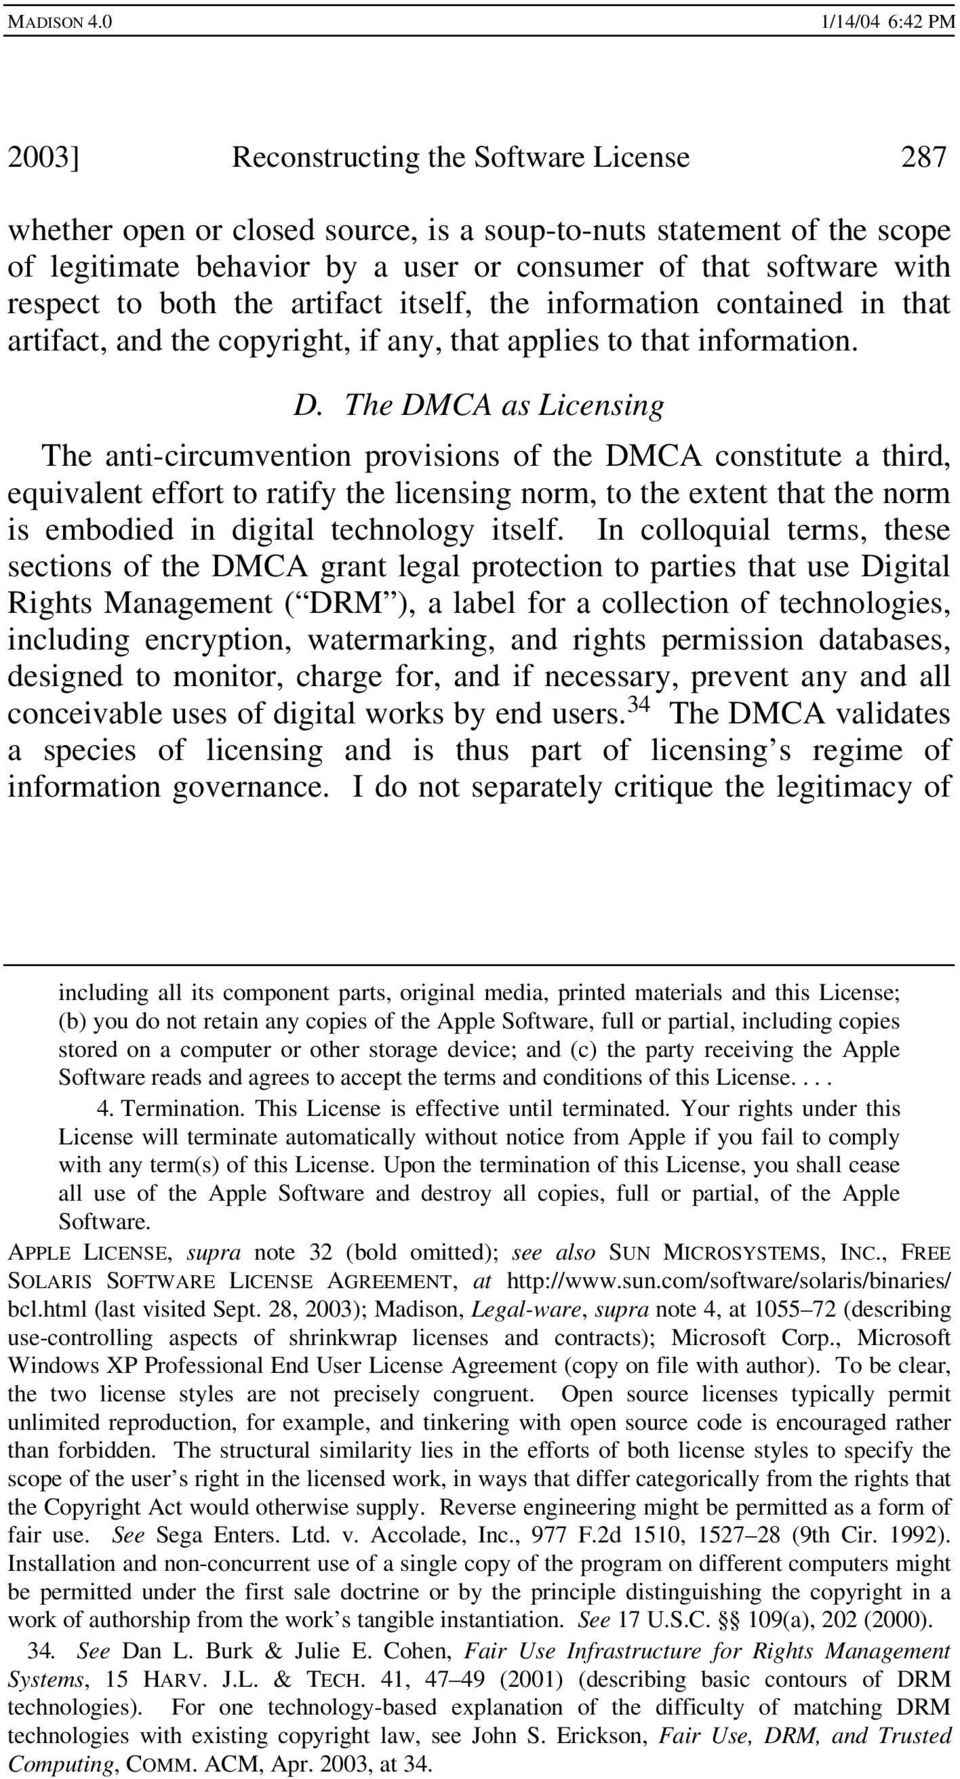 The DMCA as Licensing The anti-circumvention provisions of the DMCA constitute a third, equivalent effort to ratify the licensing norm, to the extent that the norm is embodied in digital technology